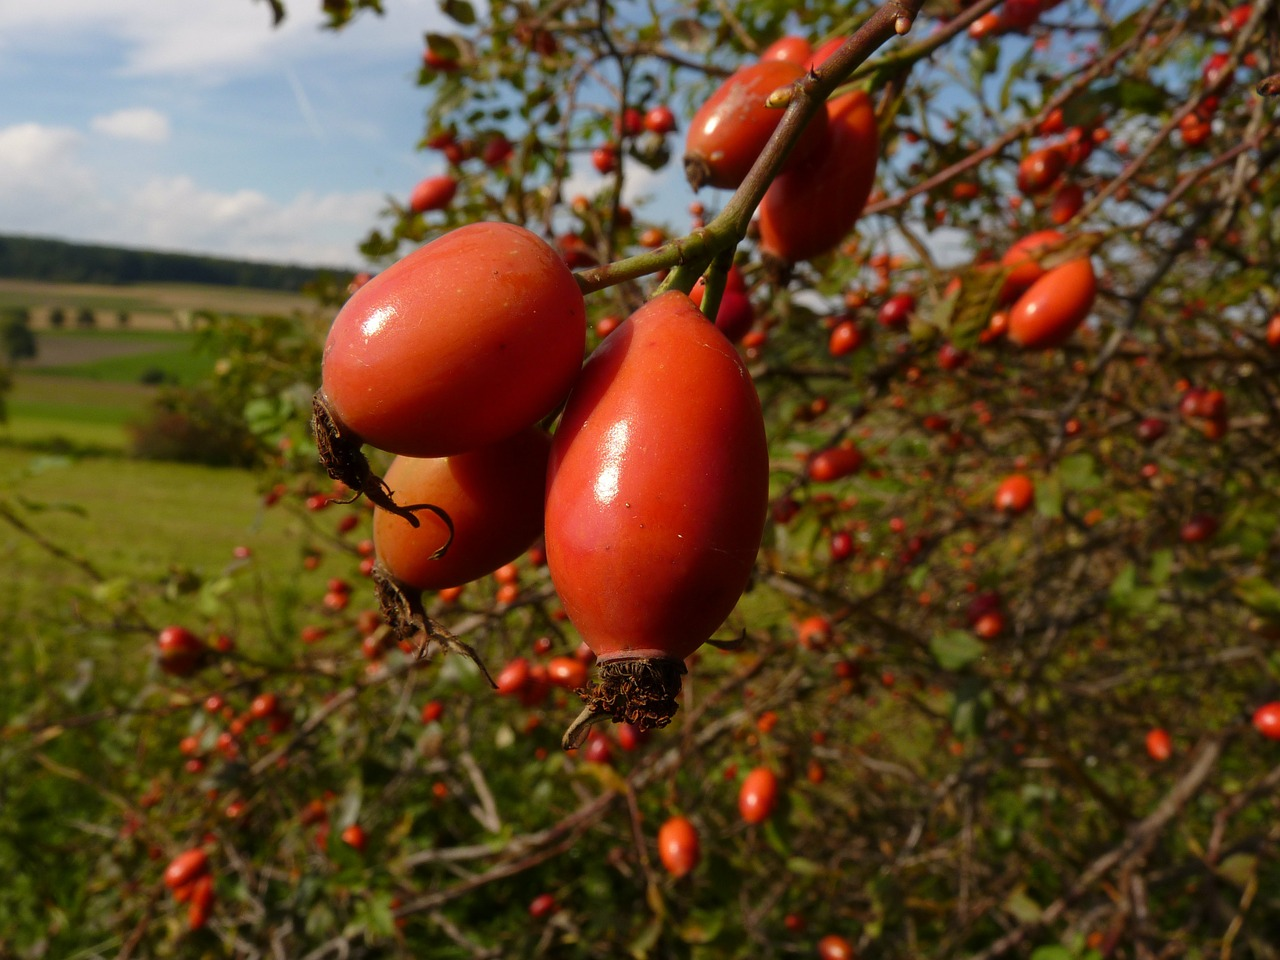 rose hip red thorn free photo